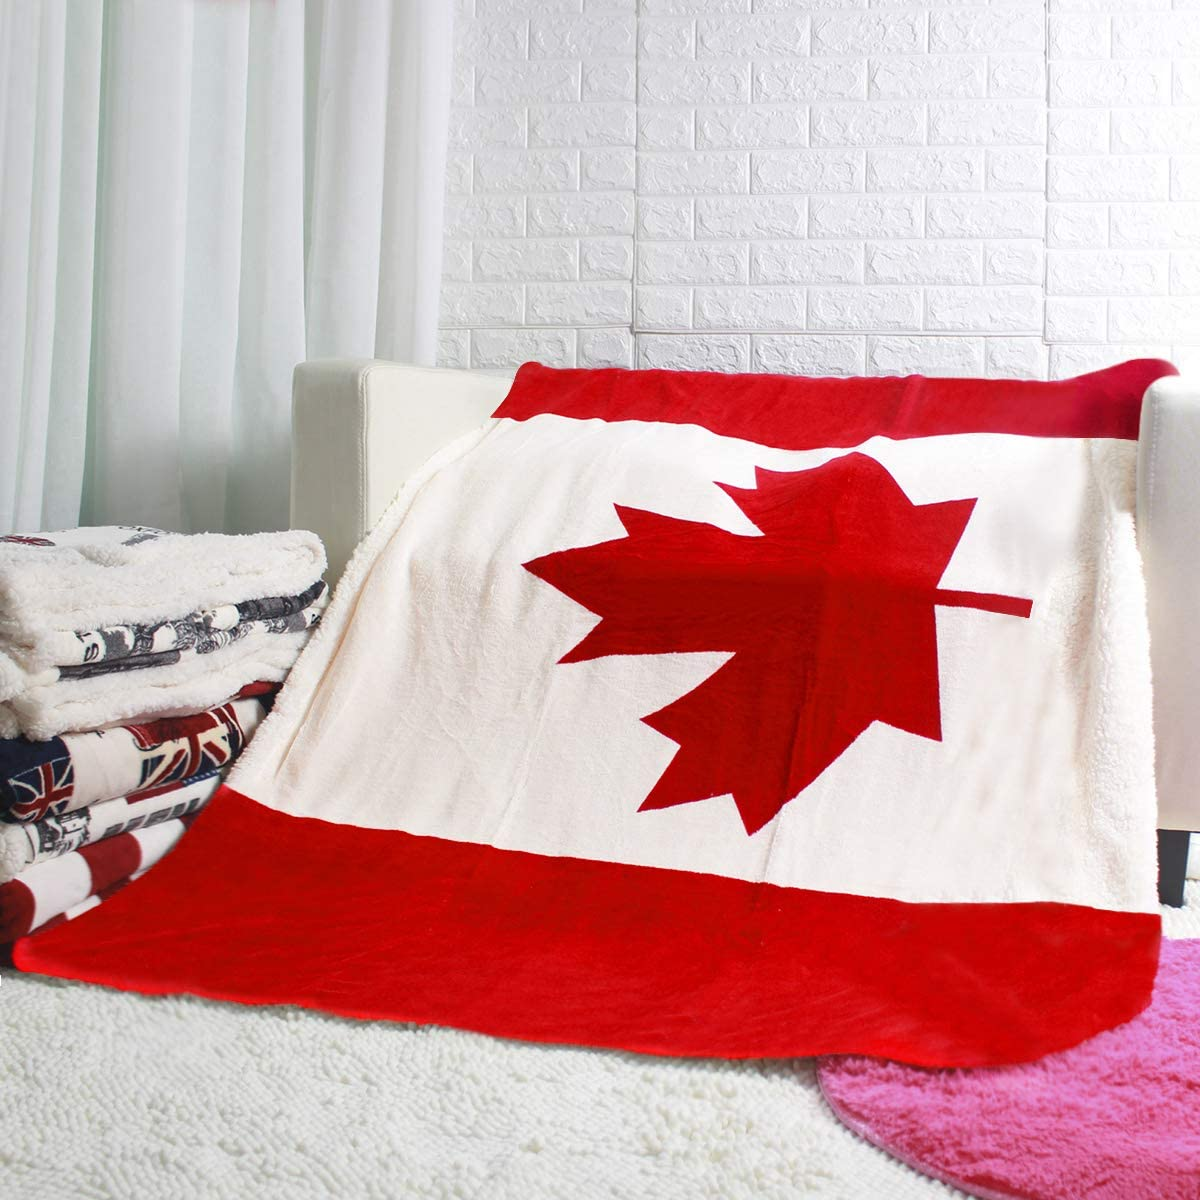 USA Canada Union Jack Flag online shopping Great Bed Daily bargain sale Fleece Blanket Brit